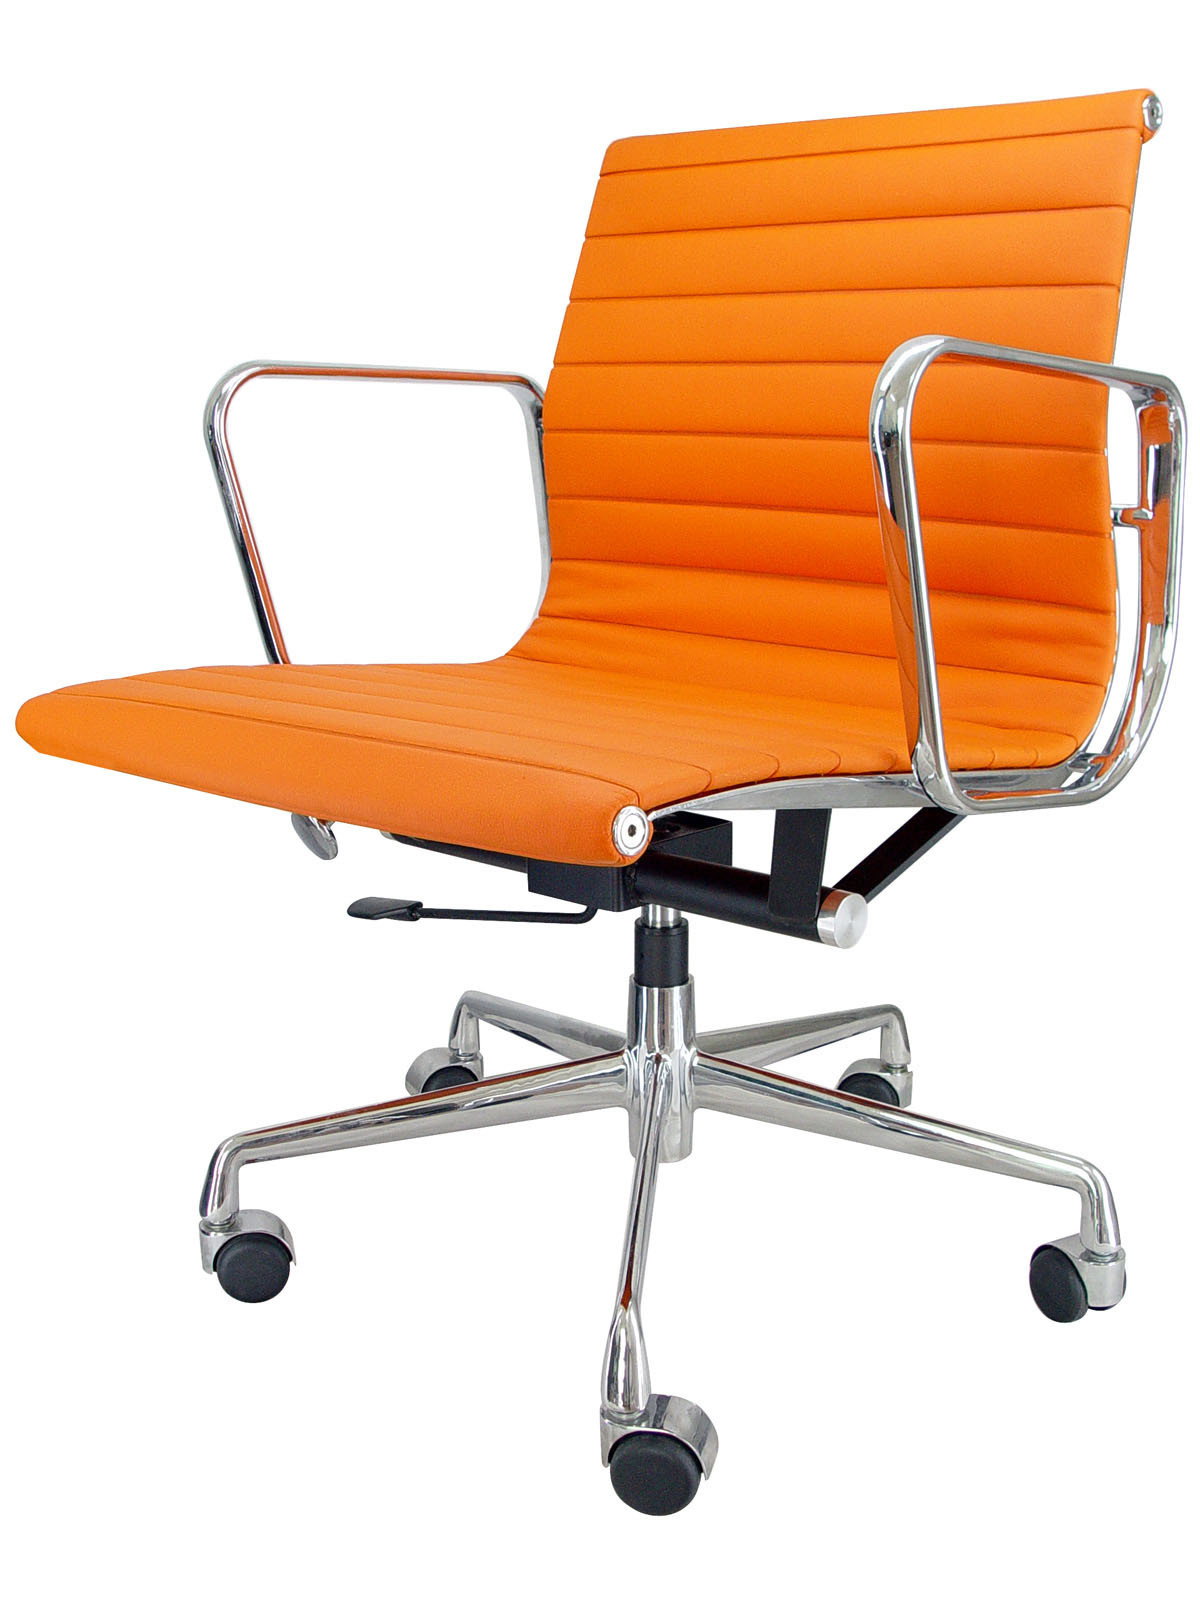 Best ideas about Orange Office Chair . Save or Pin China Orange Eames Chair EOC LME1 China Swivel Chair Now.